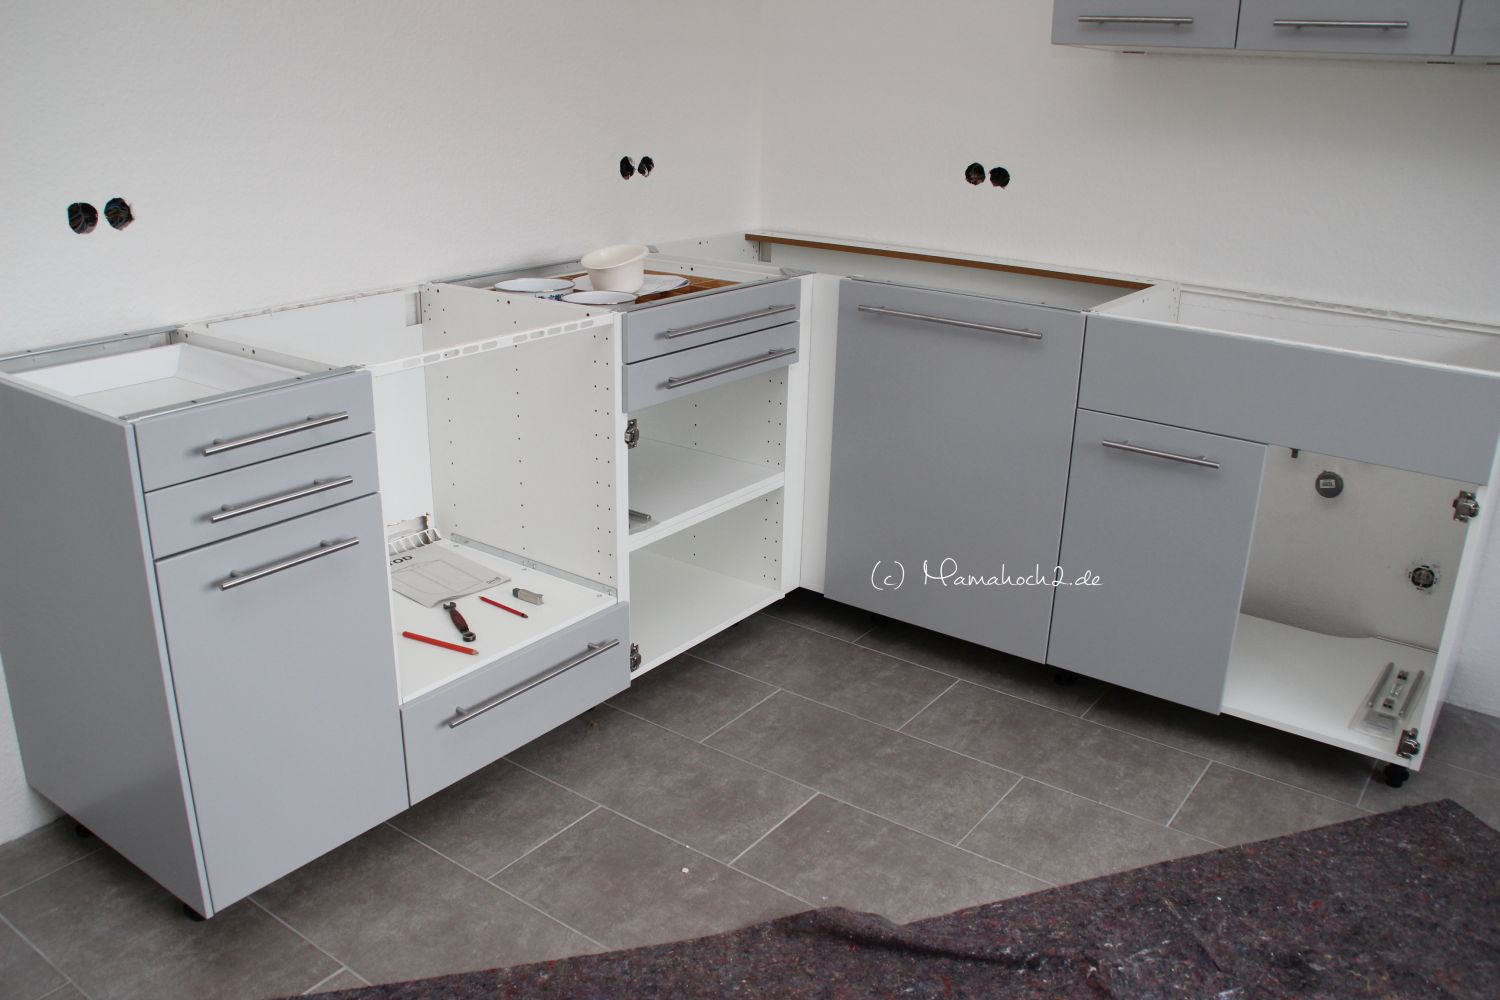 eckschrank ikea küche | bnbnews.co